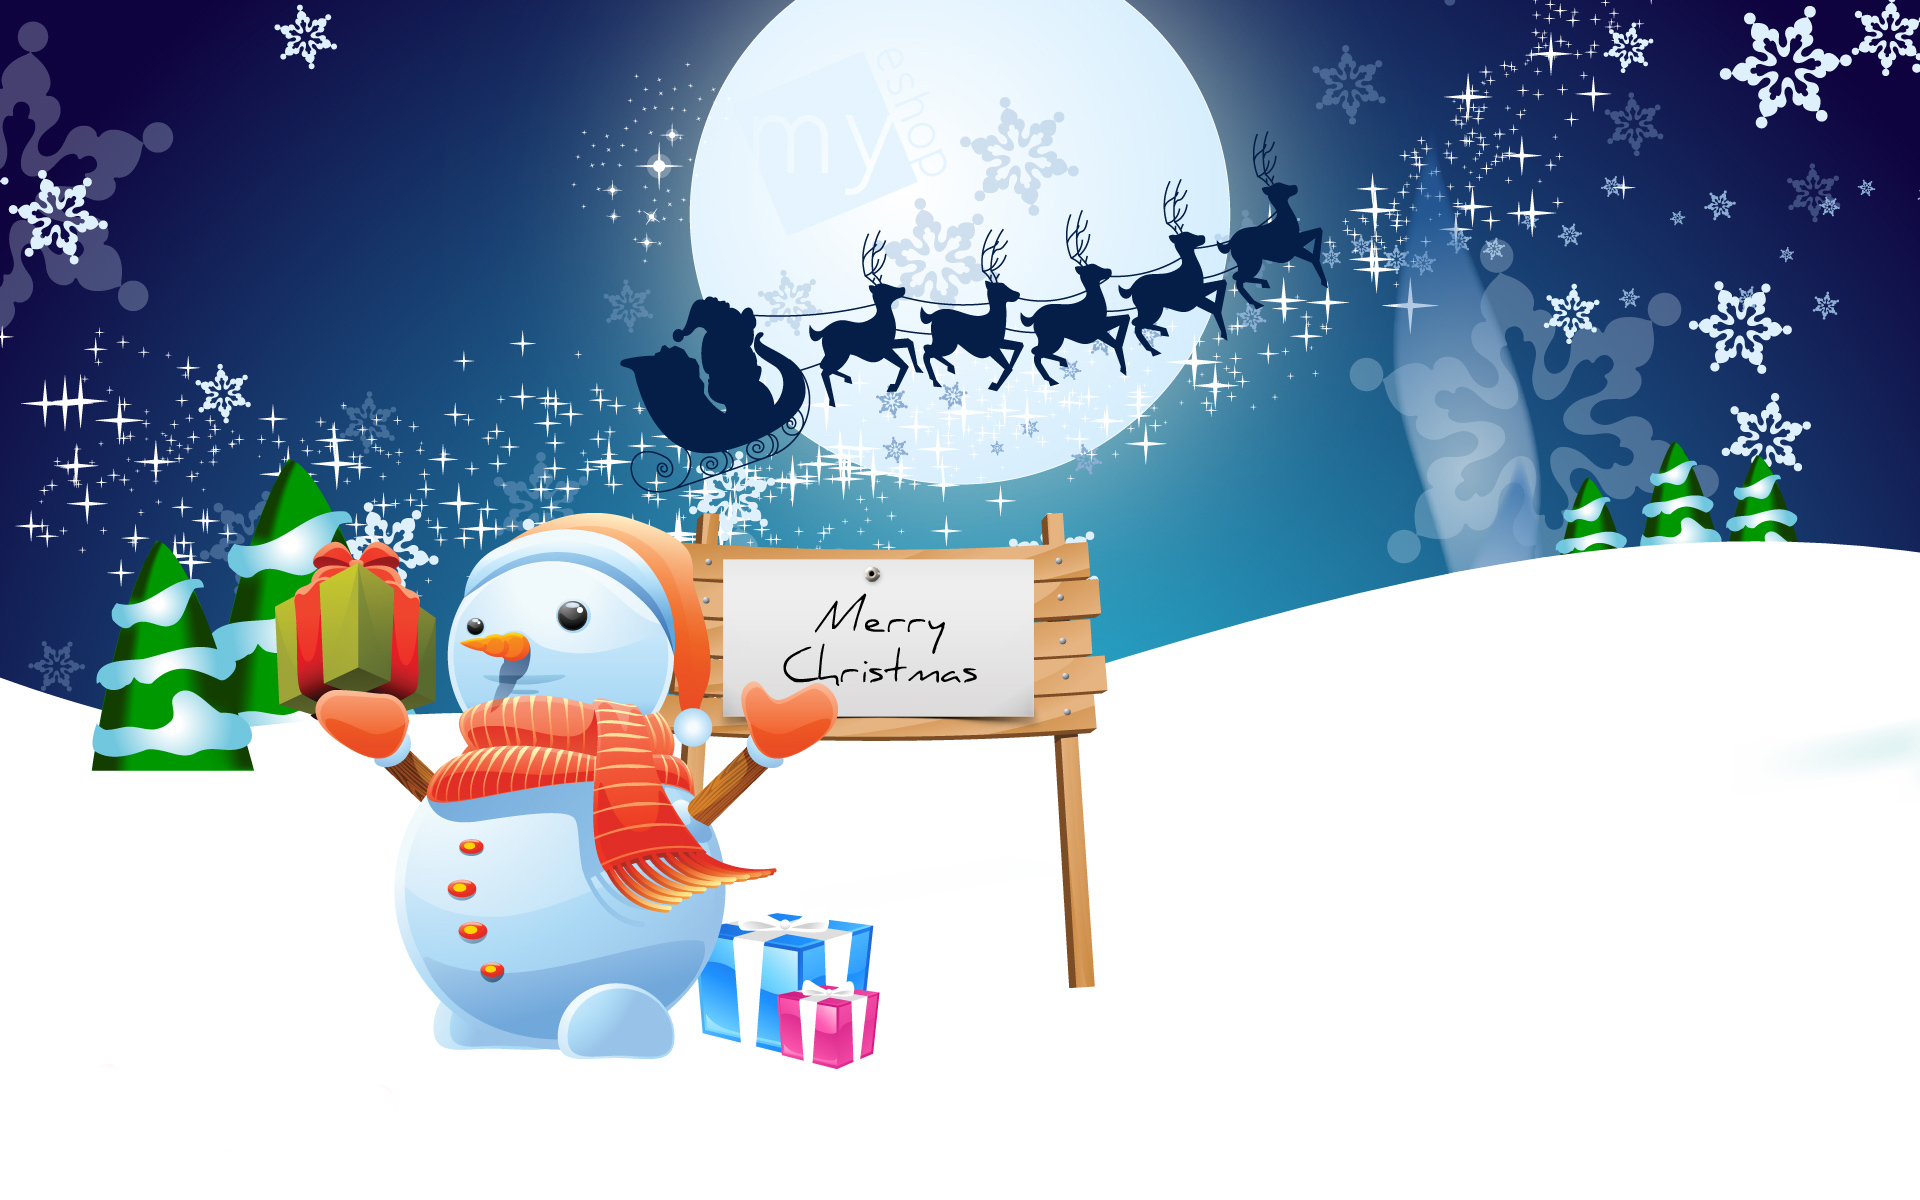 New Cartoons Wallpapers For Christmas 2015 Greetingsforchristmas 1920x1200